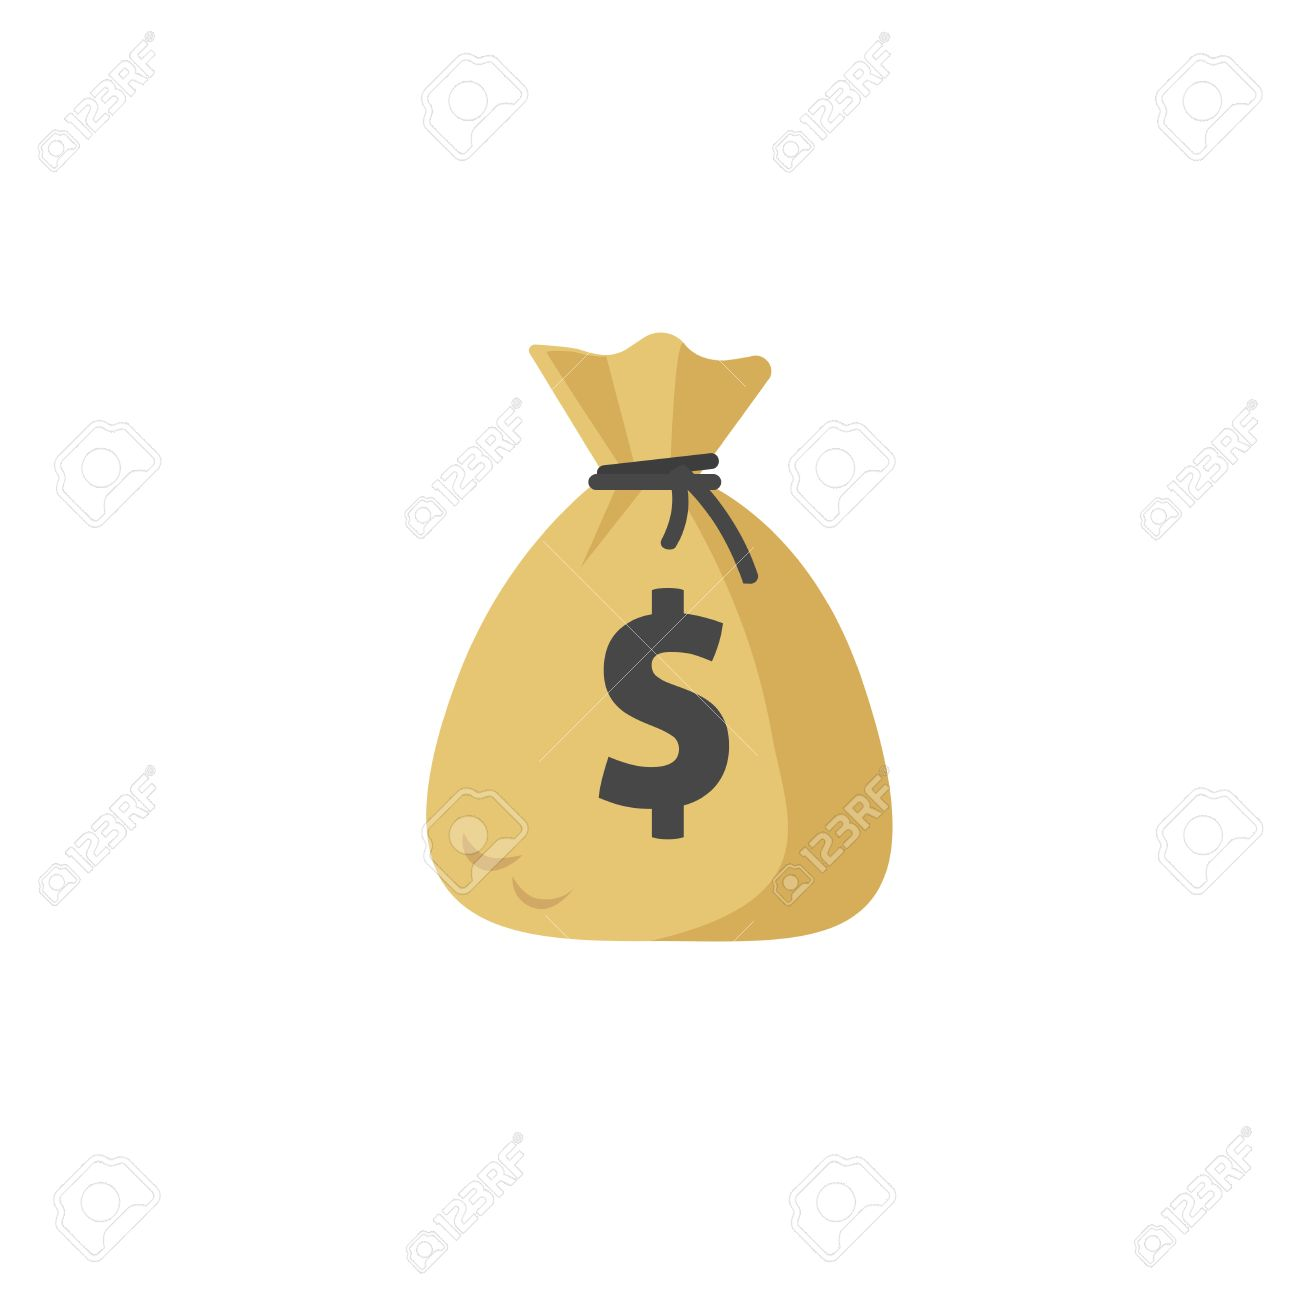 money bag vector icon moneybag flat simple cartoon illustration rh 123rf com money bag vector free download money bag emoji vector